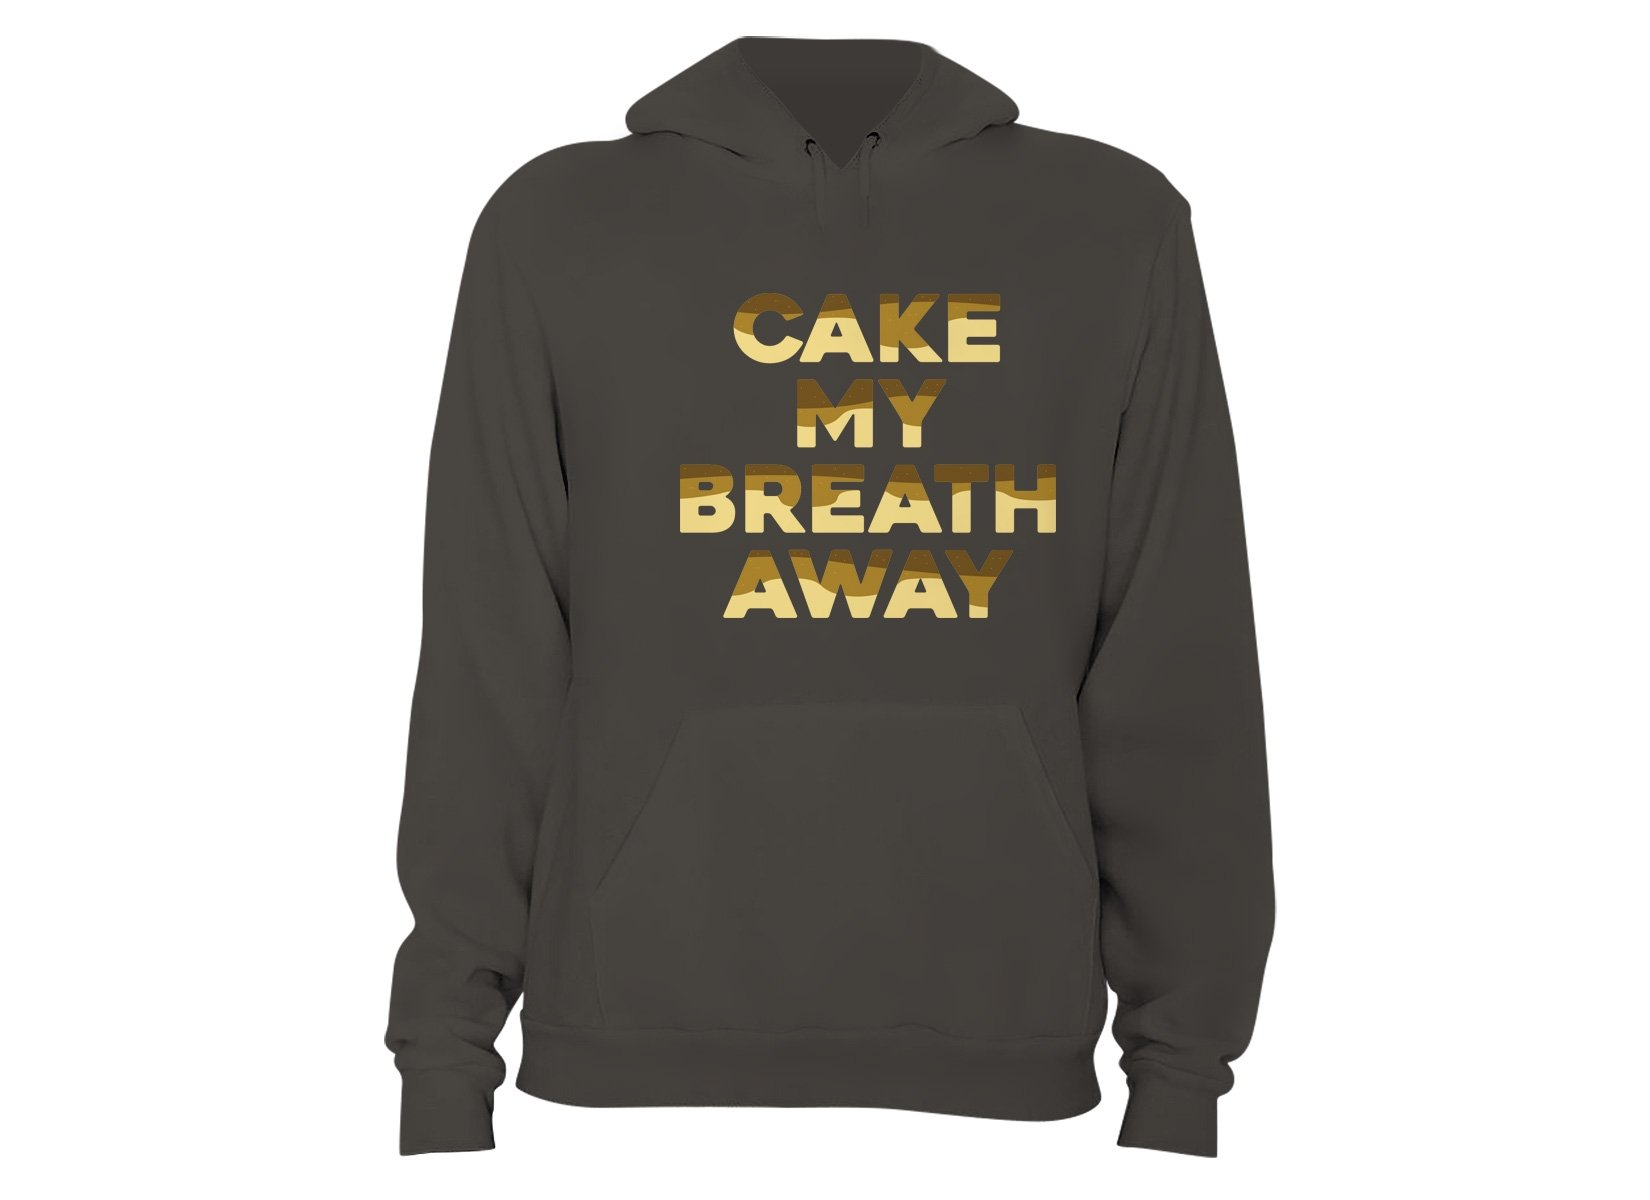 Cake My Breath Away on Hoodie